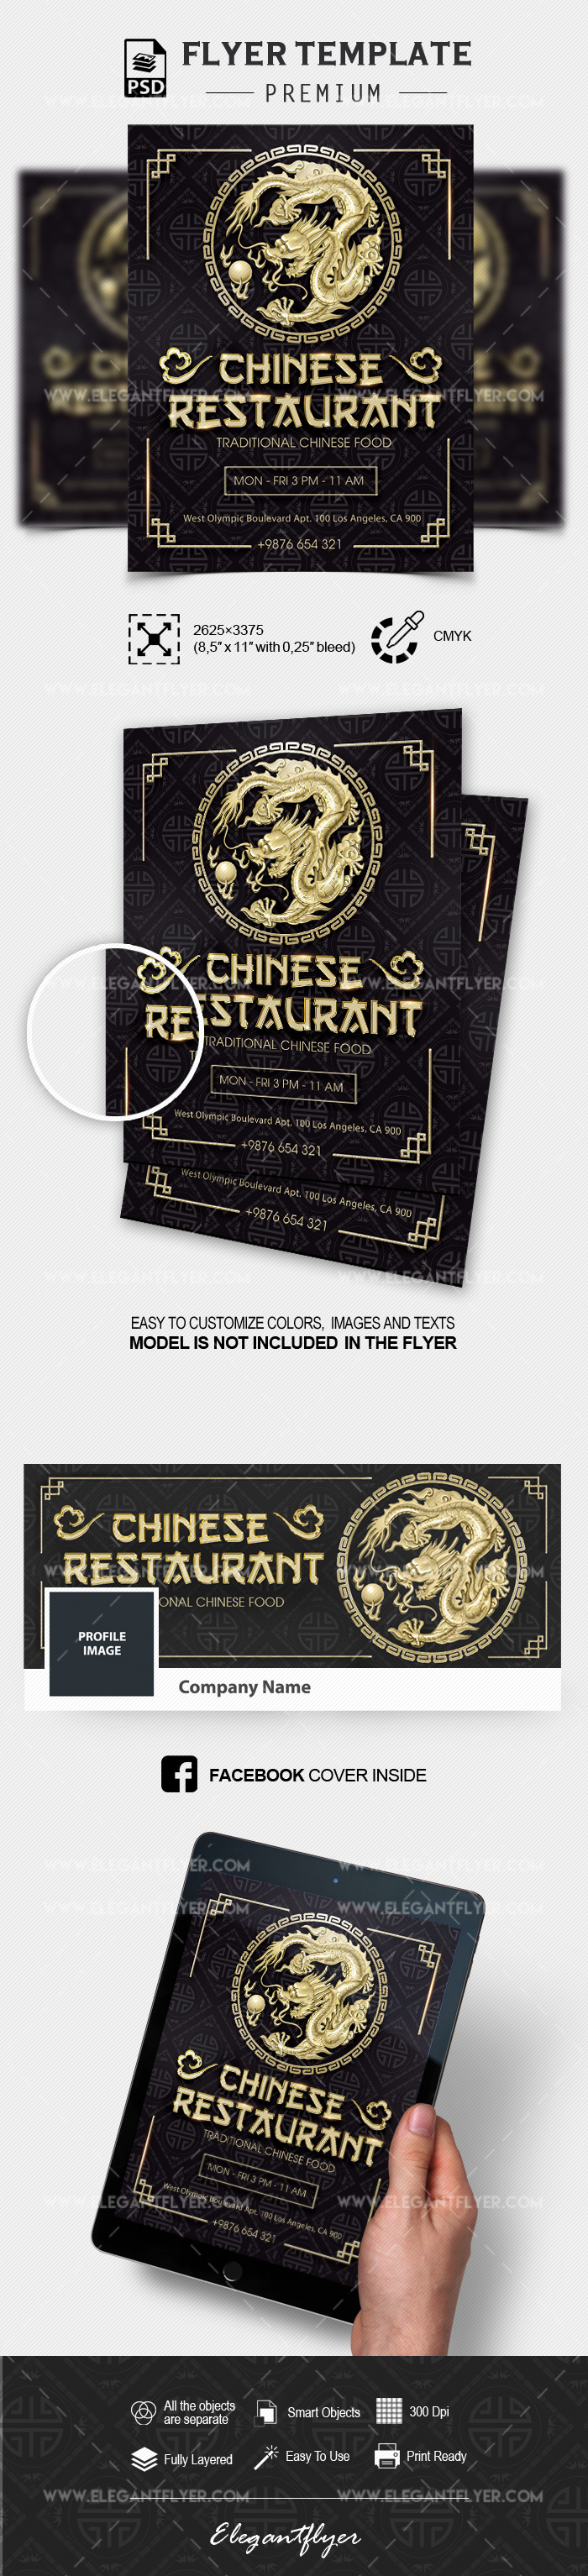 Chinese Restaurant – PSD Flyer Template